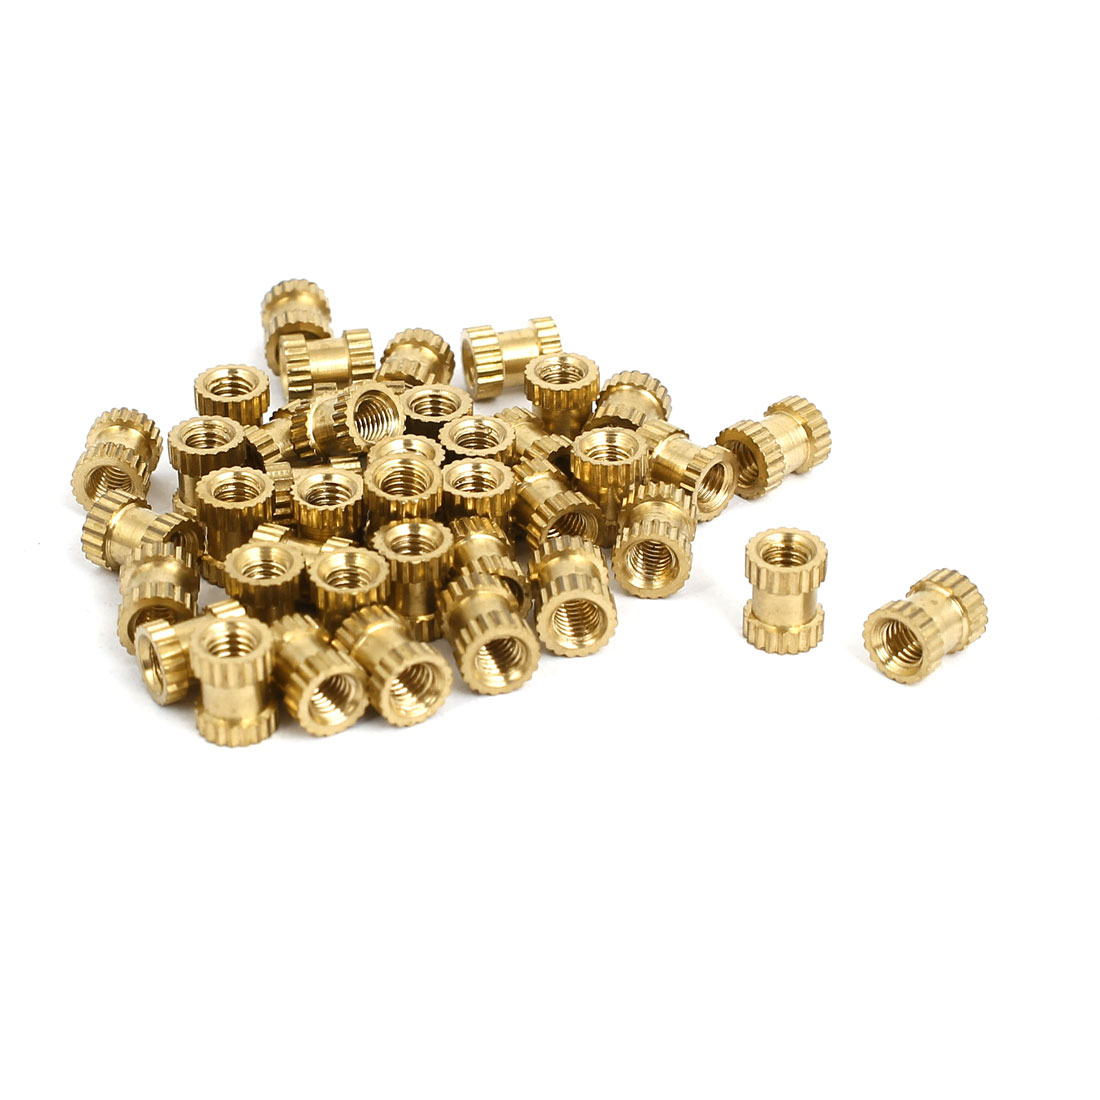 M3x6mmx5mm Female Threaded Brass Knurled Insert Embedded Nuts Gold Tone 40pcs